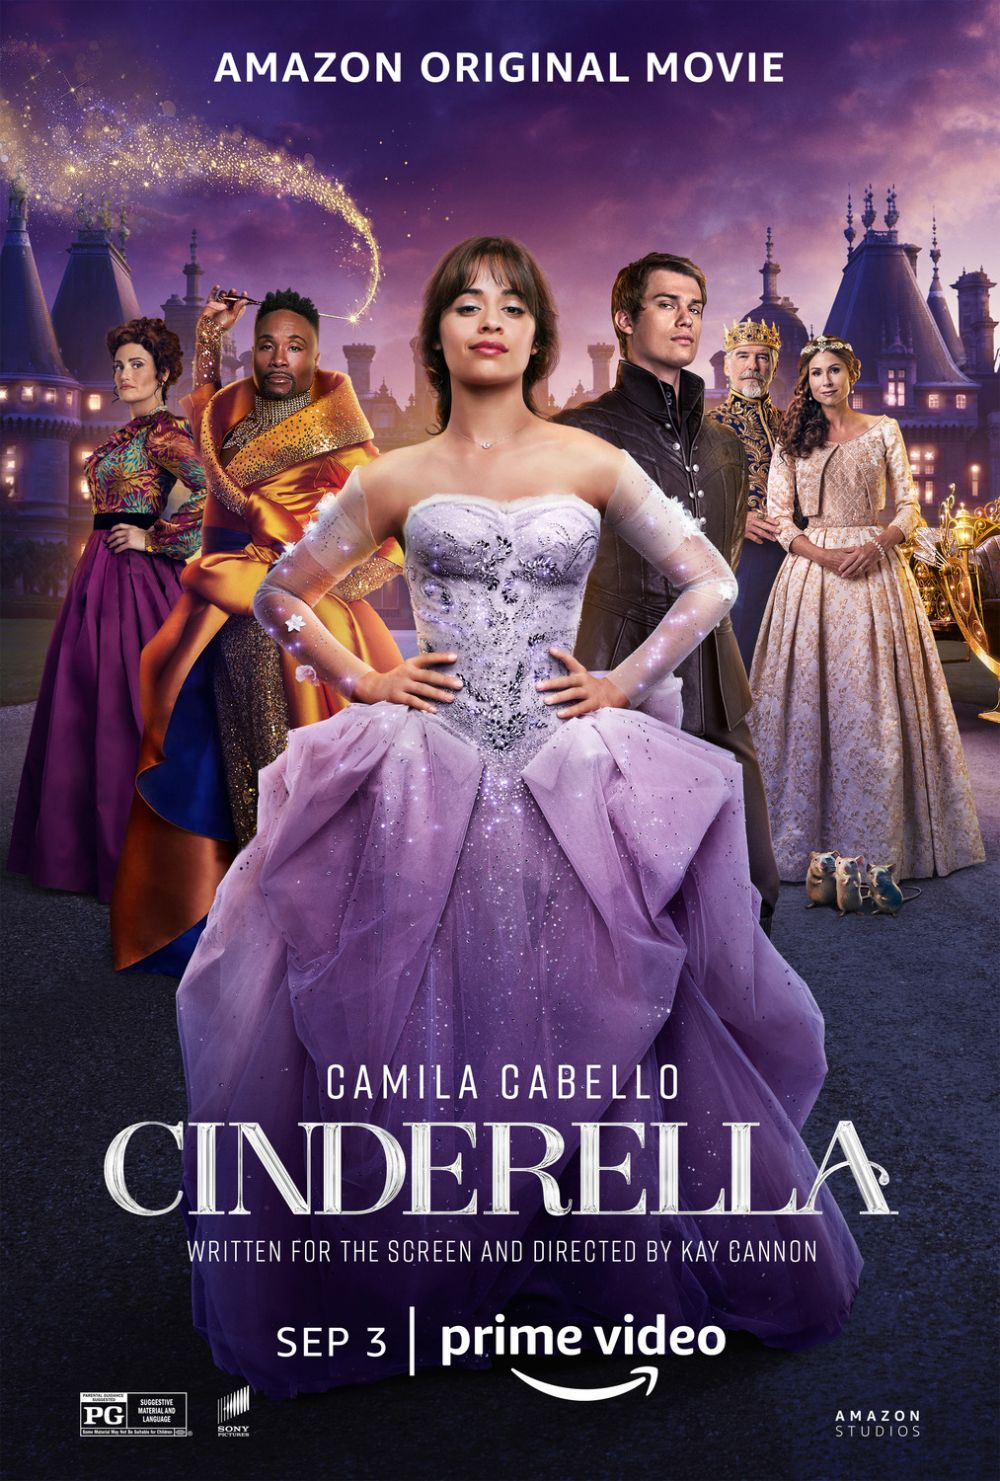 image of https://www.assets.prymix.com/media/images/movies/featured/Cinderellaprymix.com-983685463.jpeg